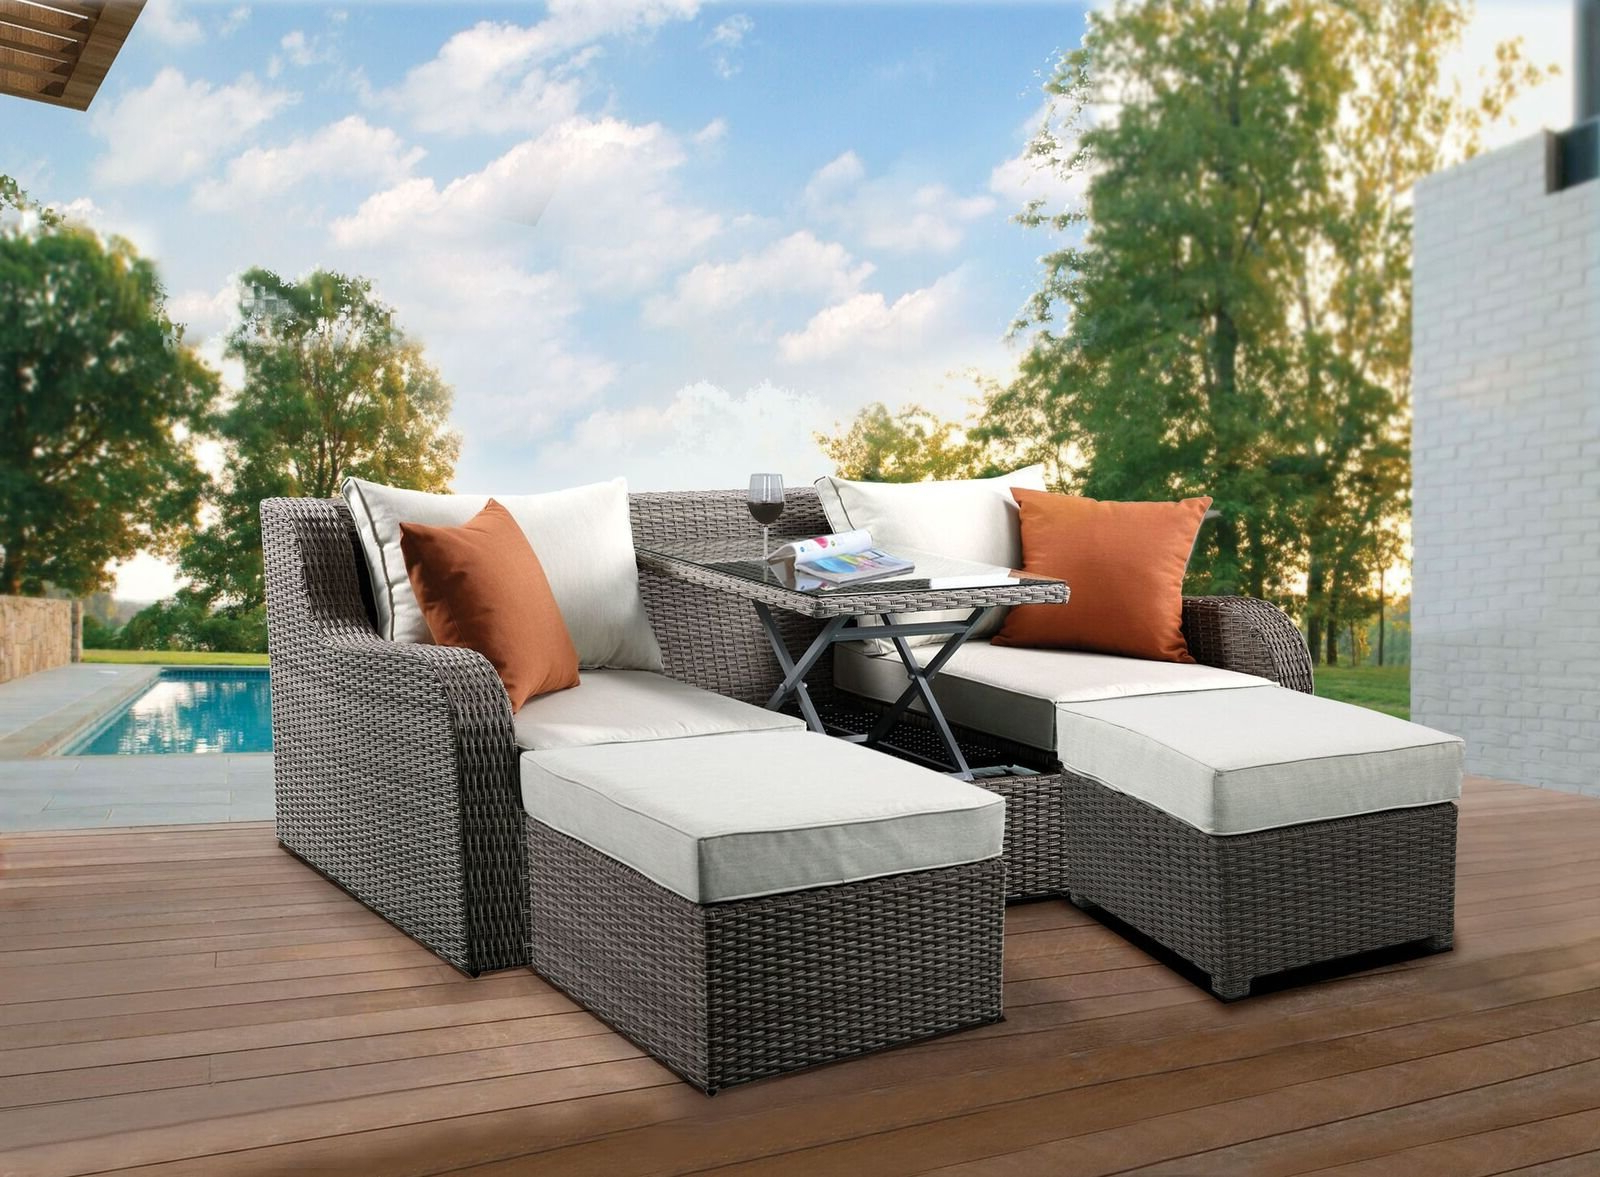 Famous Platt Patio Sofa With Cushions Within Keiran Patio Sofas With Cushions (View 3 of 20)